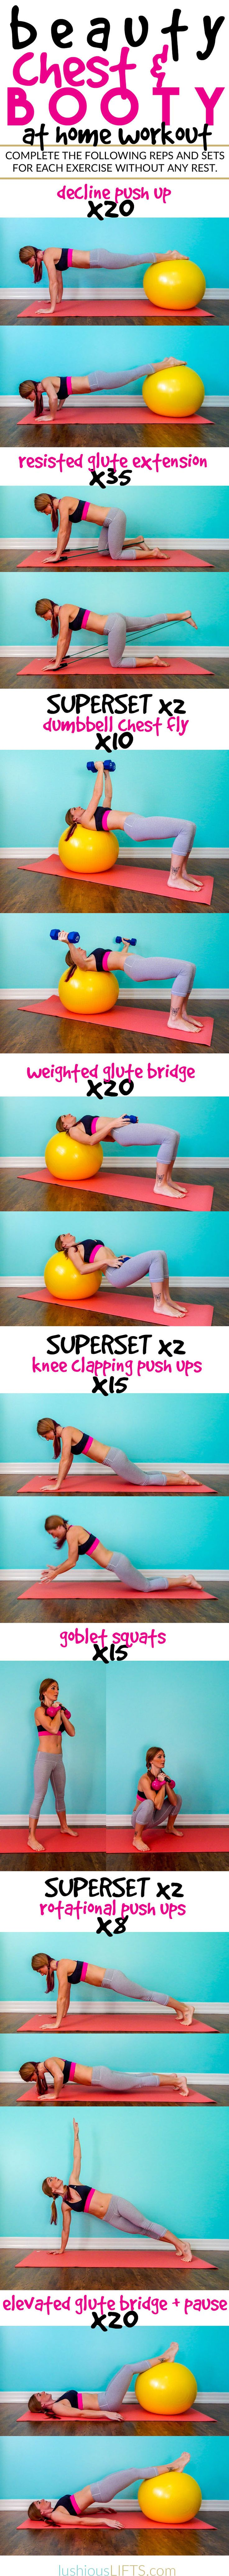 112 Best Fitness Images On Pinterest Circuit Workouts Exercises Chest And Back Superset Workout Tone Tighten Beauty Booty At Home Lushiousliftscom